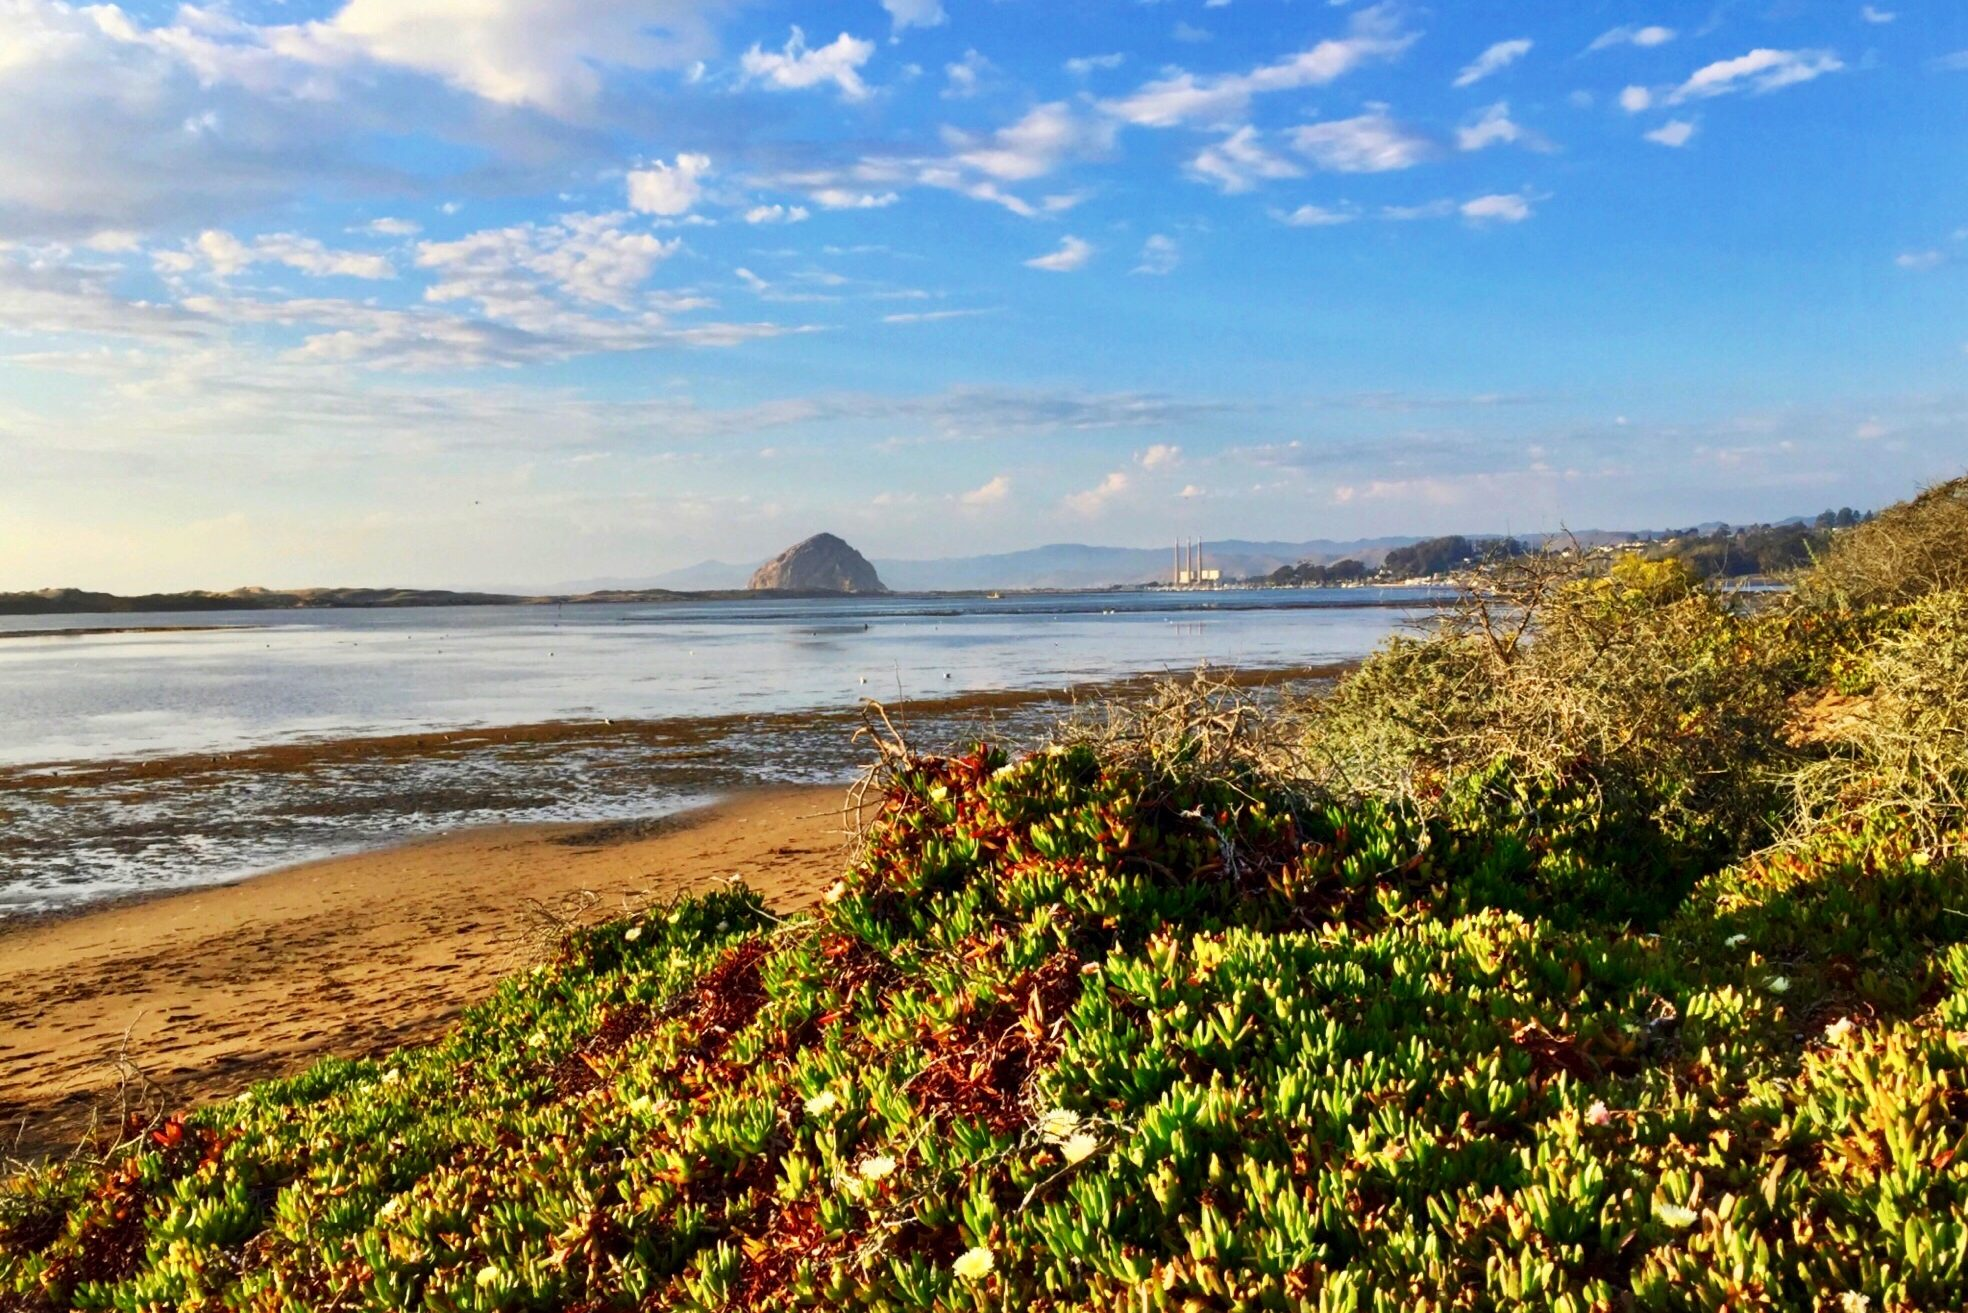 8 day Pacific Coast Highway road trip itinerary - Morro Bay